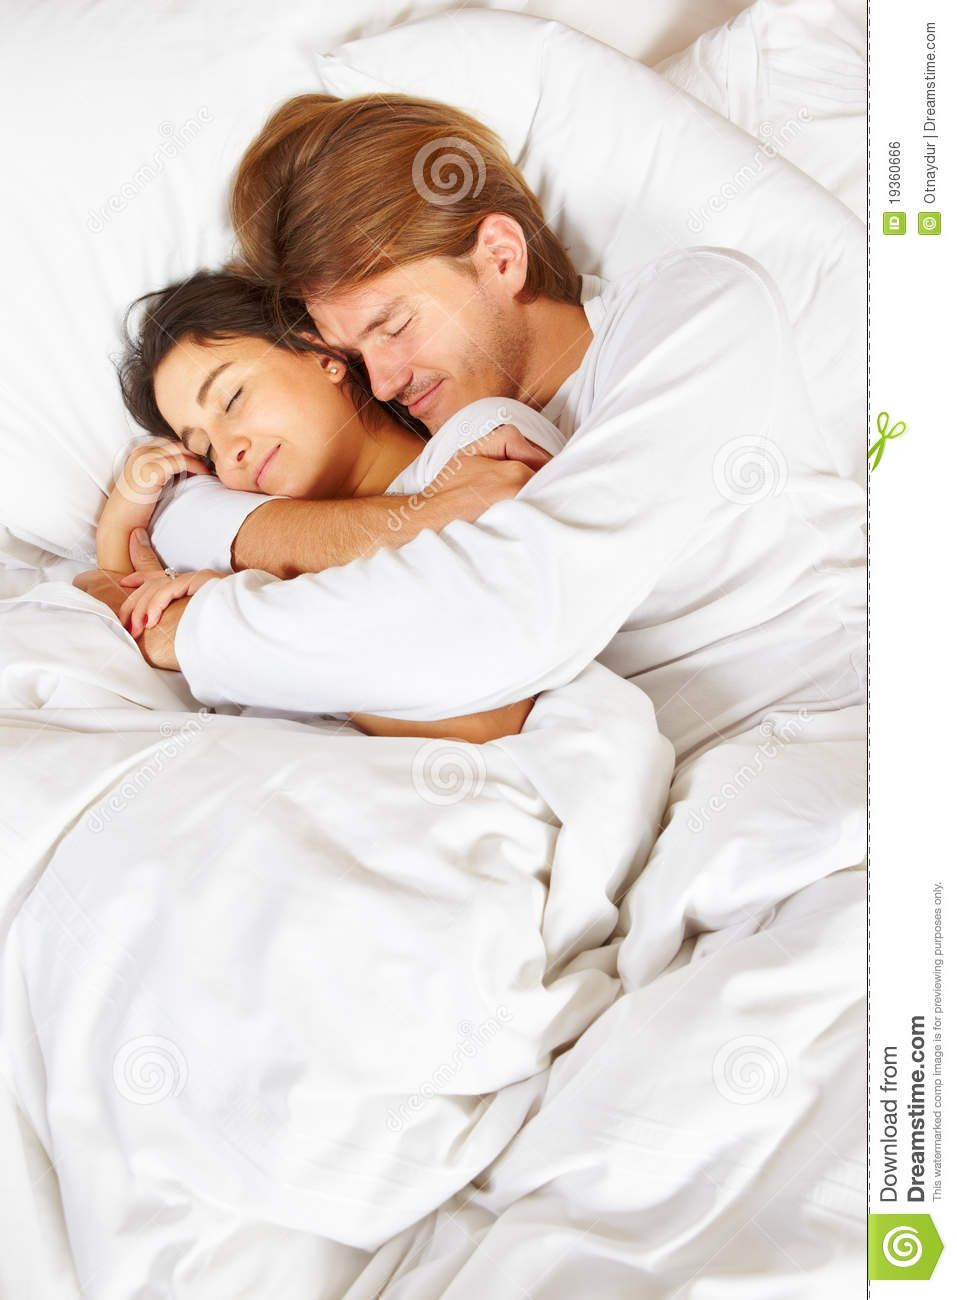 Online dating sleeping together